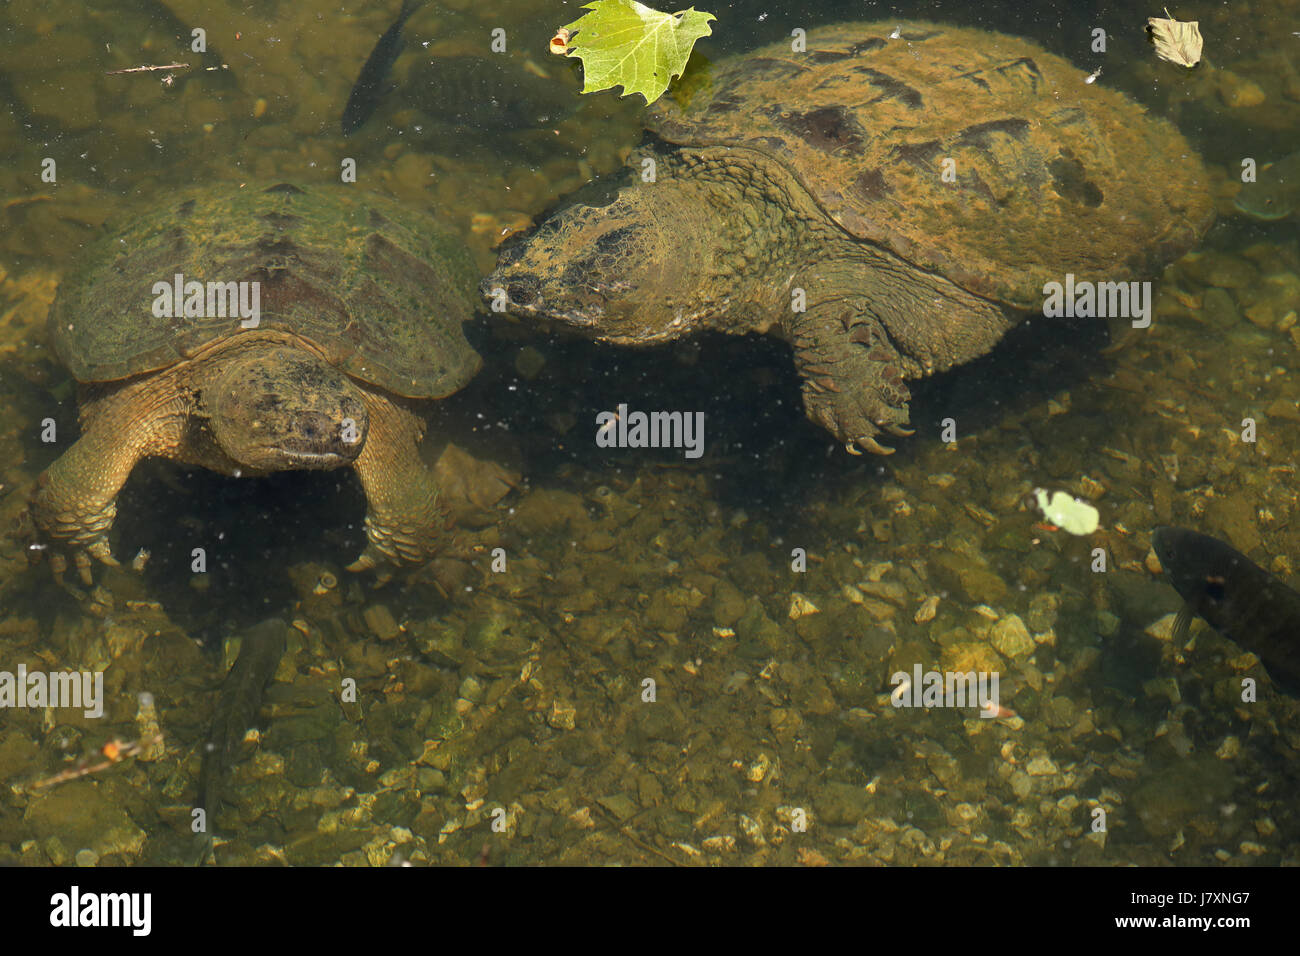 Snapping turtles, Chelydra serpentina, Maryland, amongst bluegill nests, (Lepomis macrochirus) - Stock Image